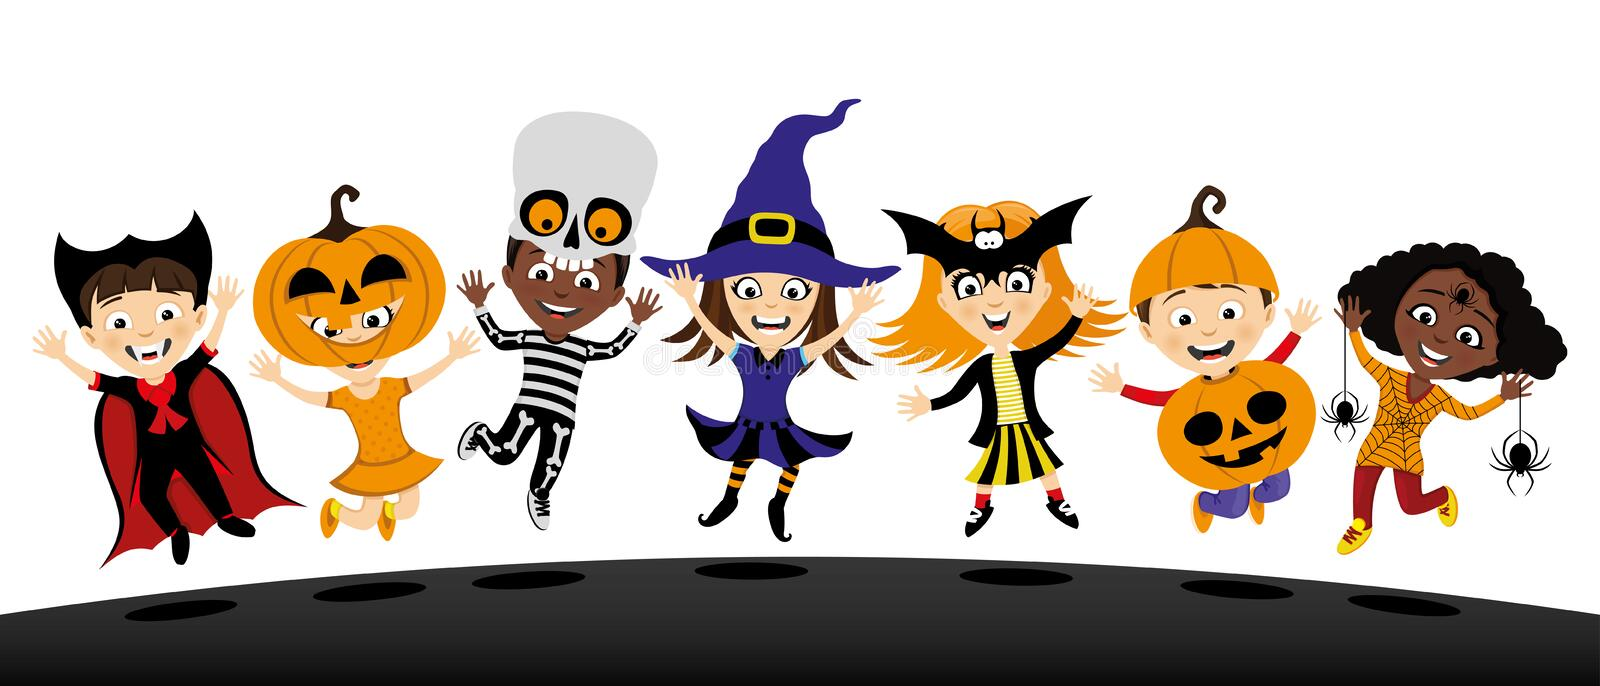 Group of children in costumes for haloween. royalty free illustration